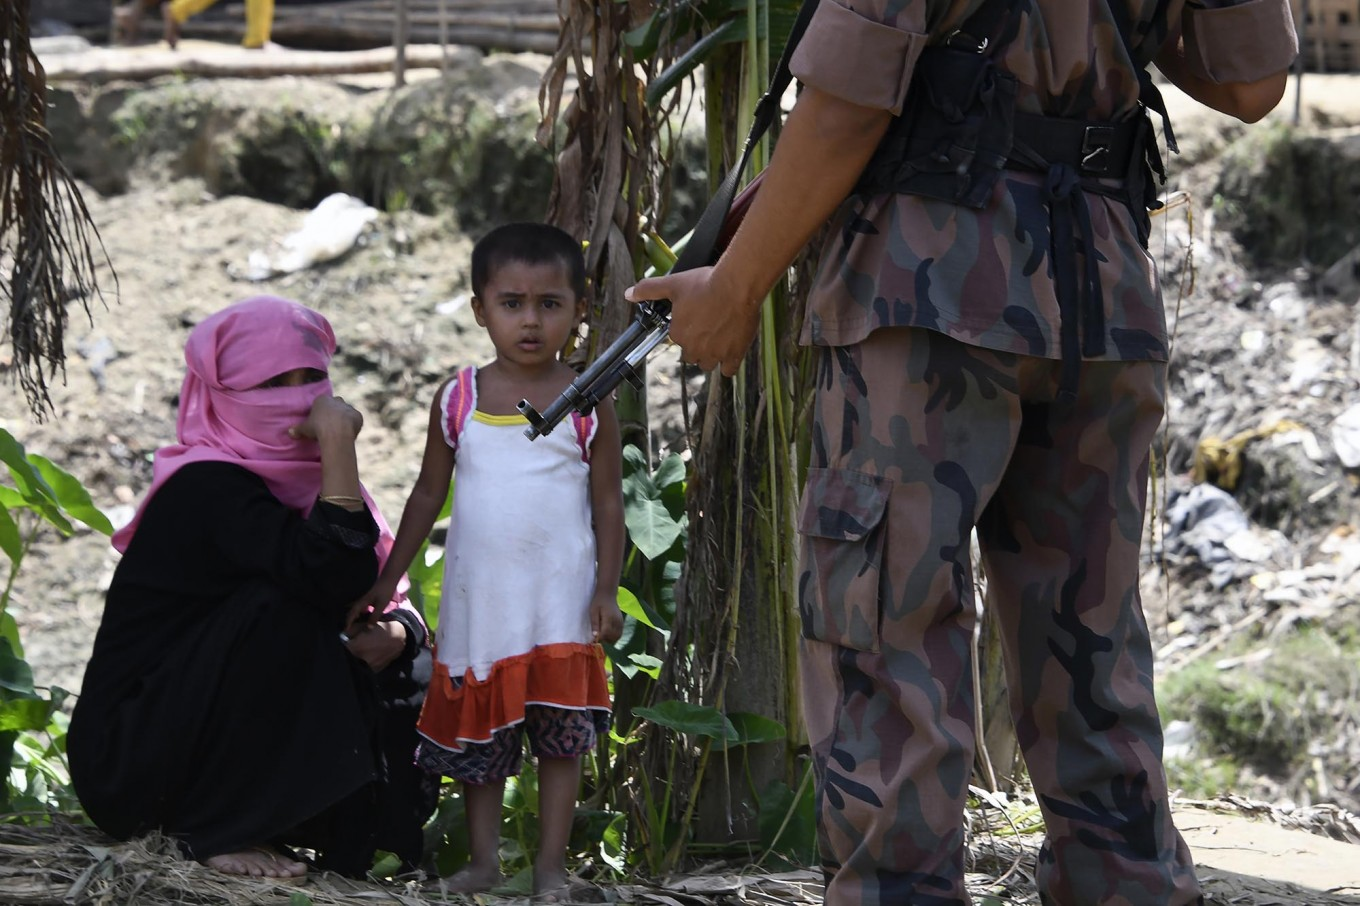 A Bangladesh border guard stands guard at the Jalpatoli refugee camp for Rohingya Muslims in the no-man's land area between Myanmar and Bangladesh, near Gumdhum village in Ukhia on September 16, 2017. According to the UN nearly 400,000 Rohingya have arrived in Bangladesh since August 25 after fleeing a military crackdown launched by Myanmar's military in response to attacks by Rohingya rebels. AFP/ Dominique Faget